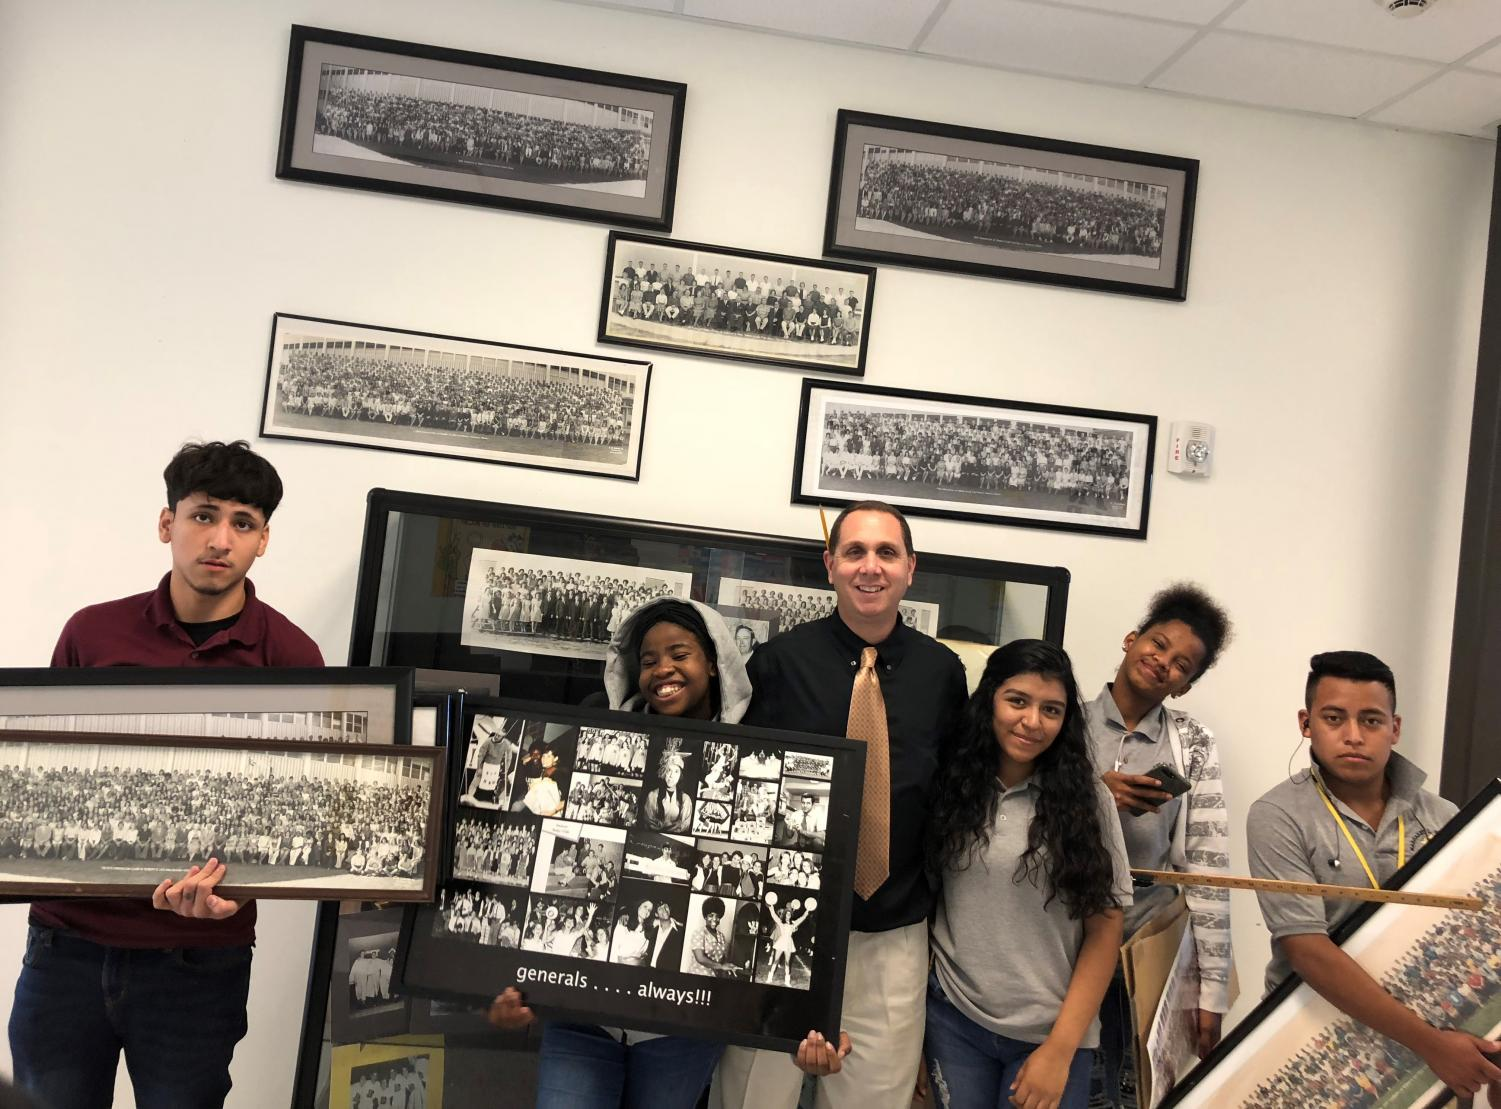 Student reporters of The Wisdom Chronicle in Mr. Fanucchi's class helped organize a project to hang old class photos from the history of Lee High School (1963-2016) in the main hallway of the new Wisdom HS.